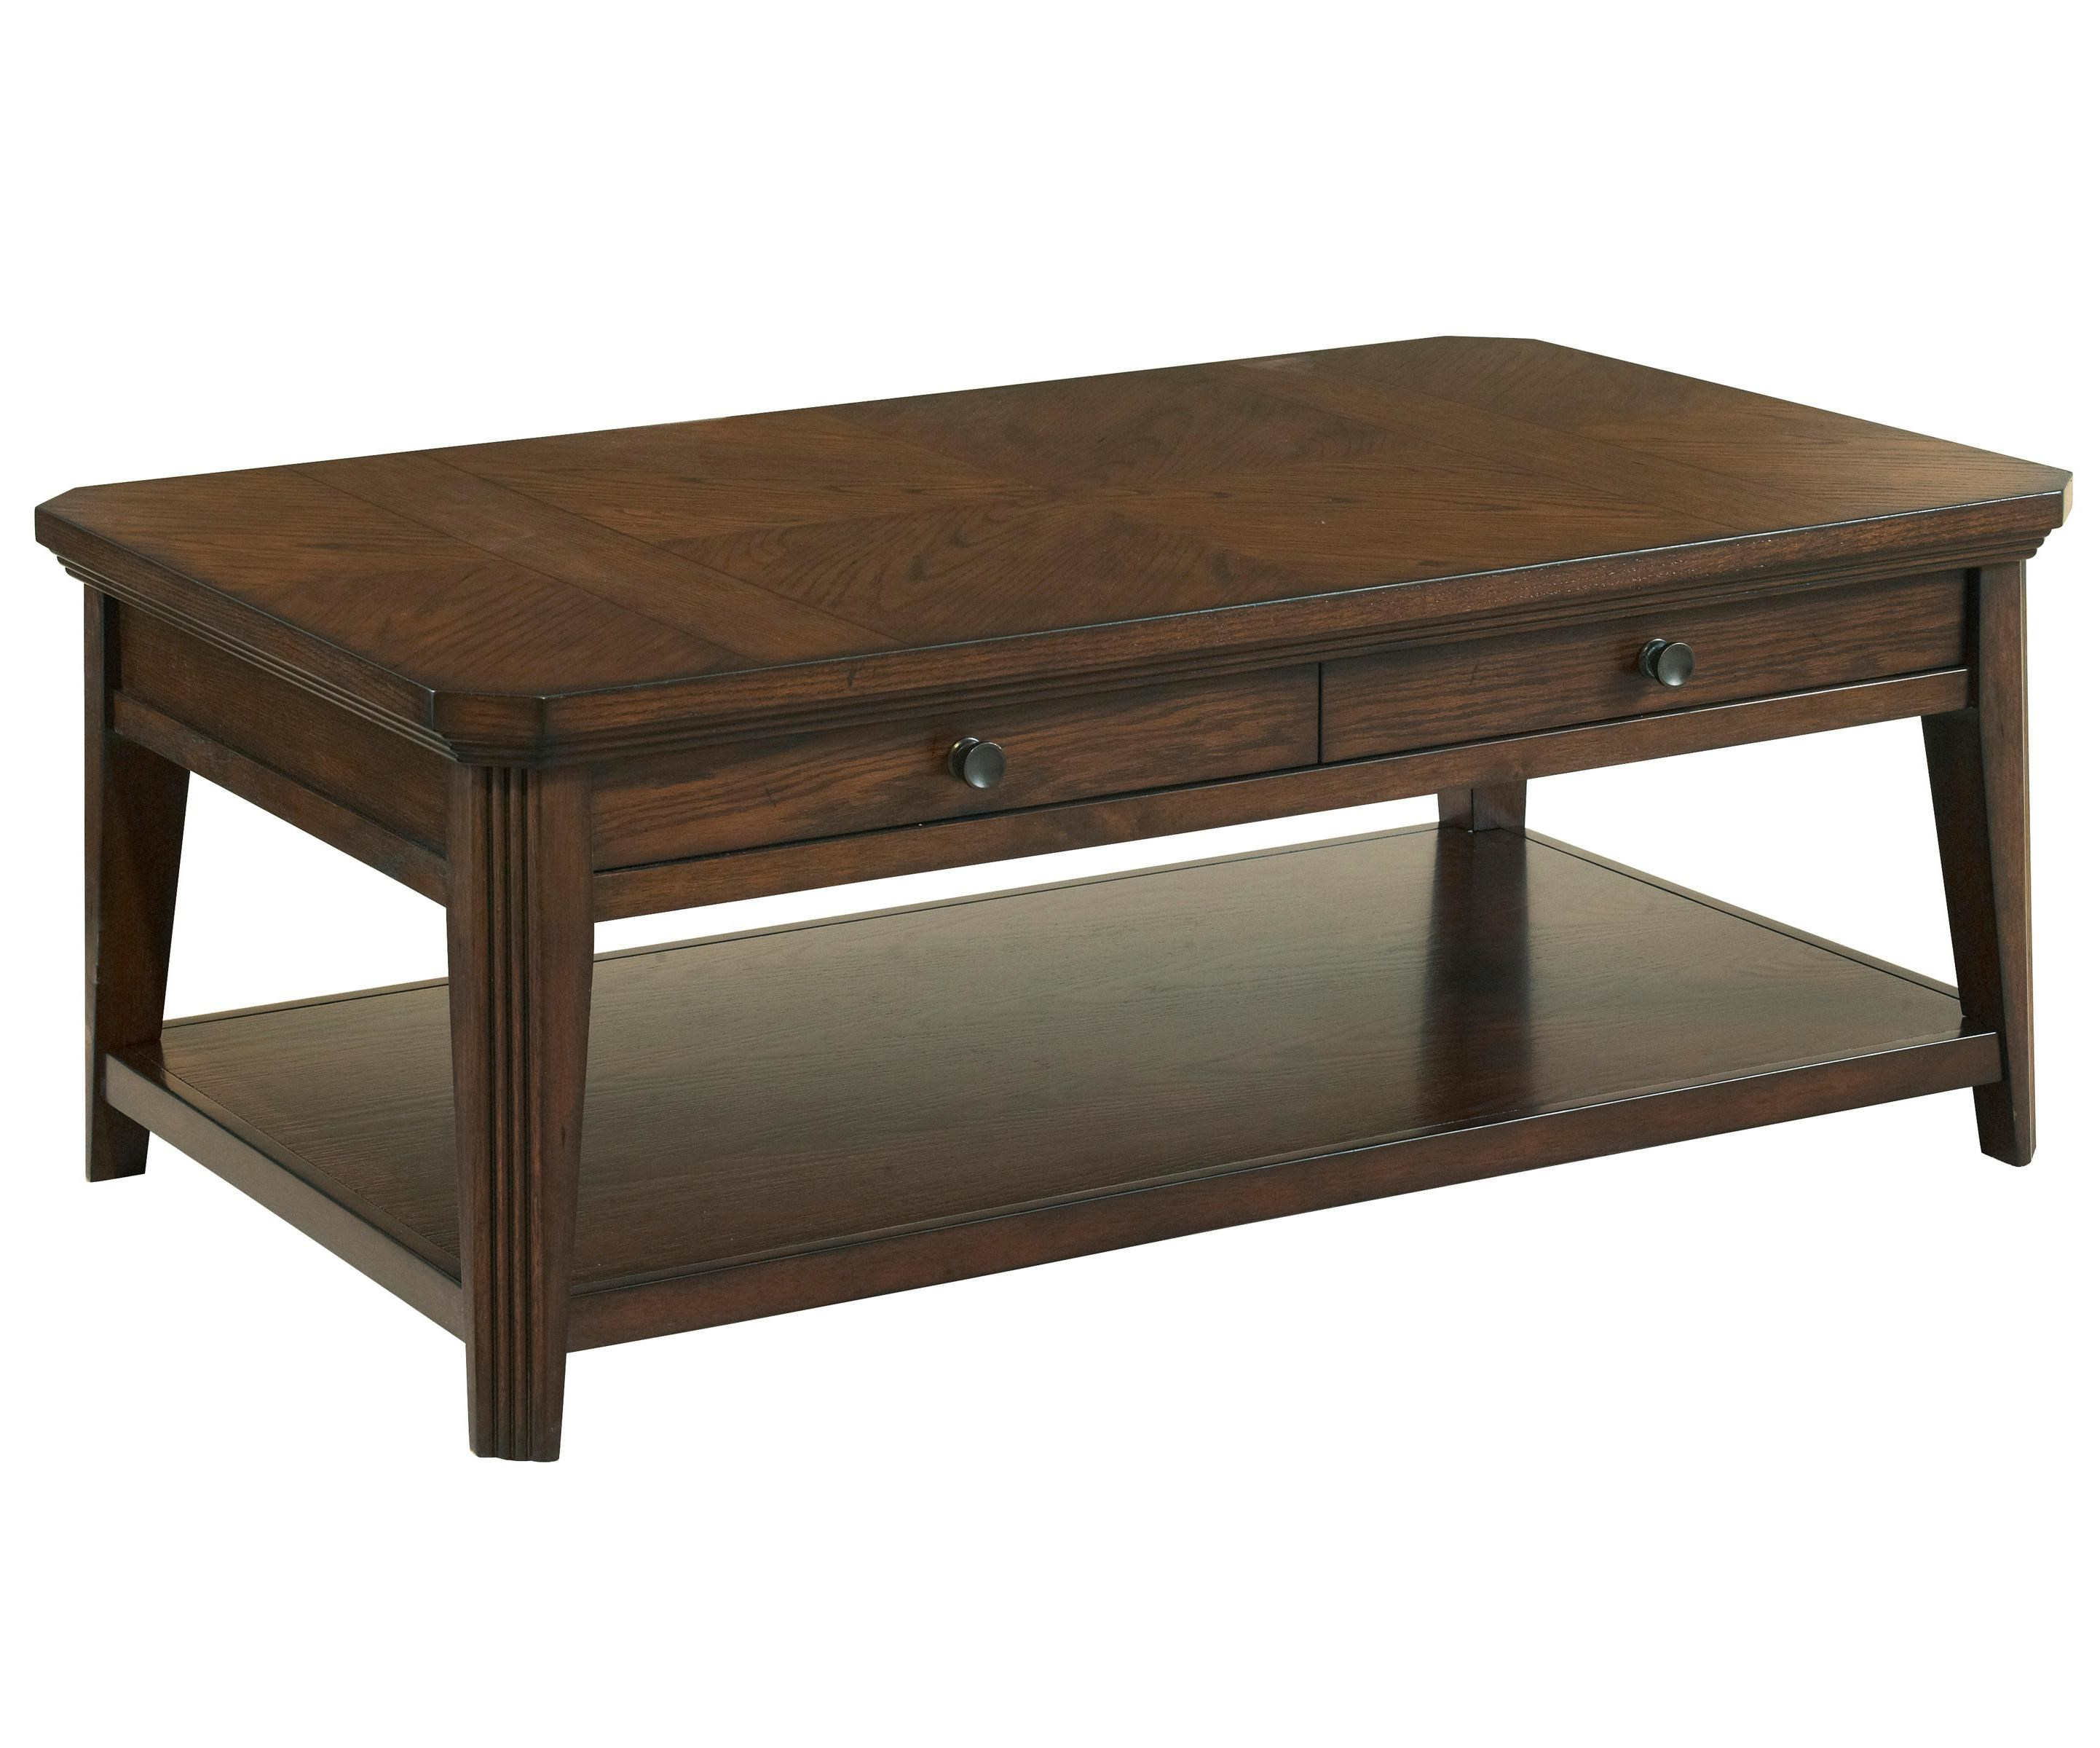 Broyhill Furniture Estes Park Storage Cocktail Table With 1 Shelf   Belfort  Furniture   Cocktail/Coffee Tables